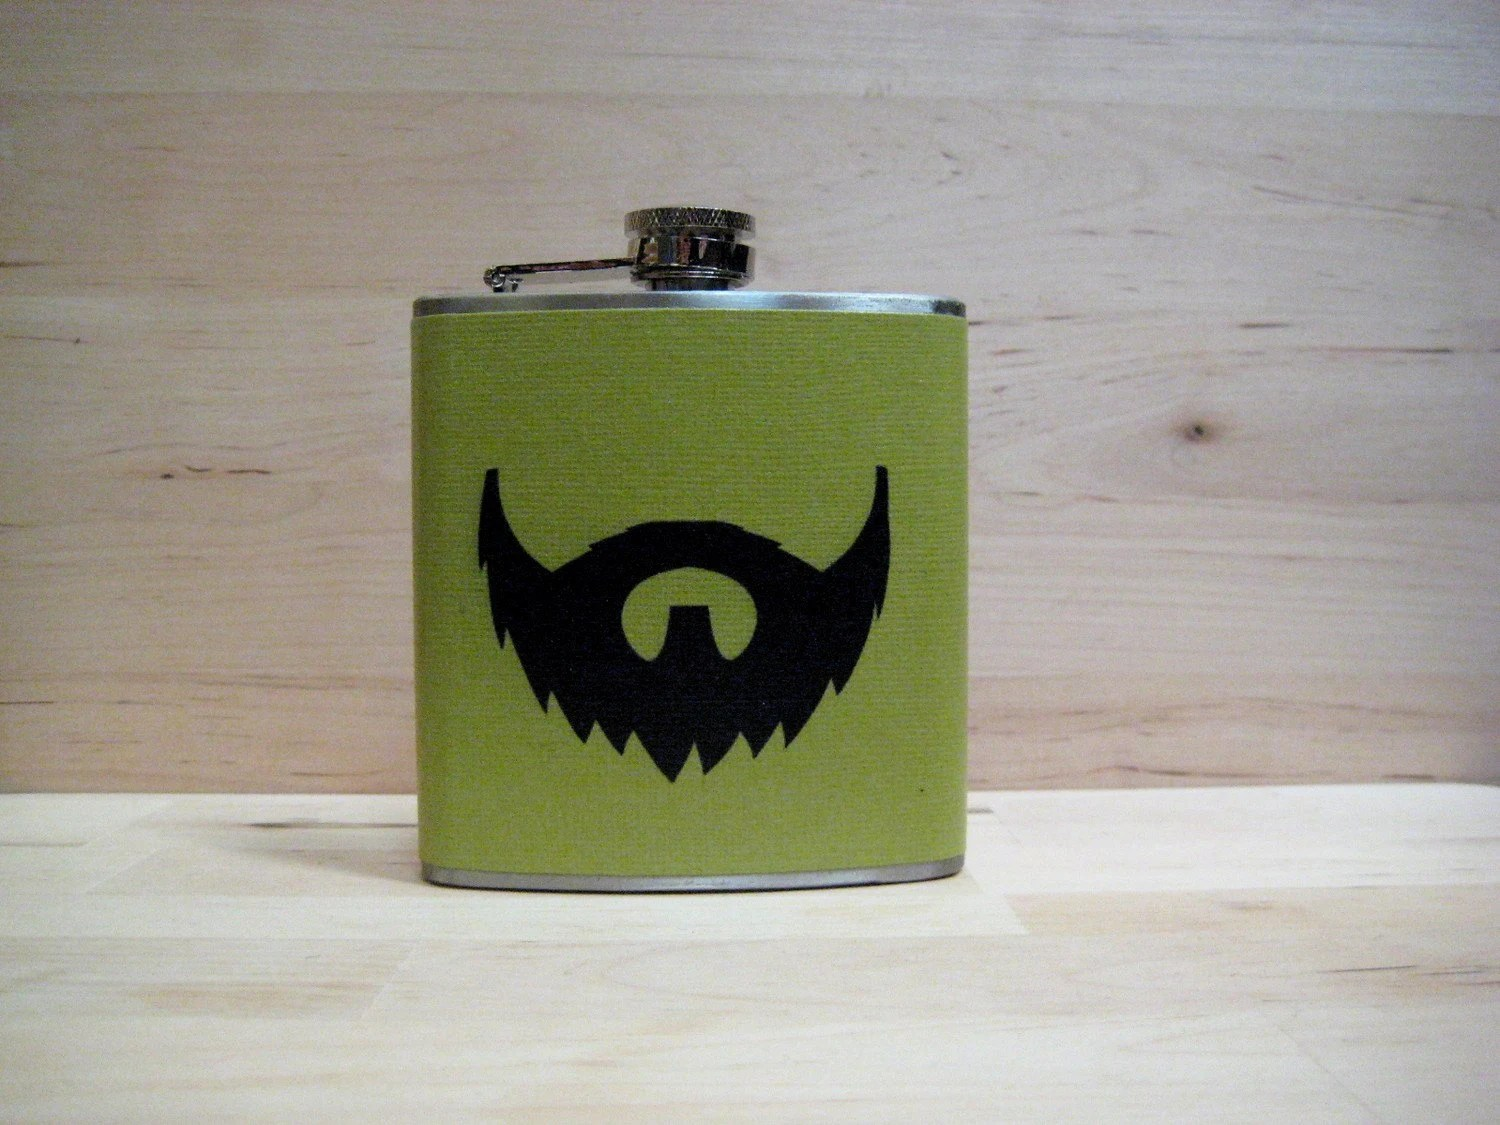 6 oz Stainless Steel - The Beard Love Flask (TM) - on Green